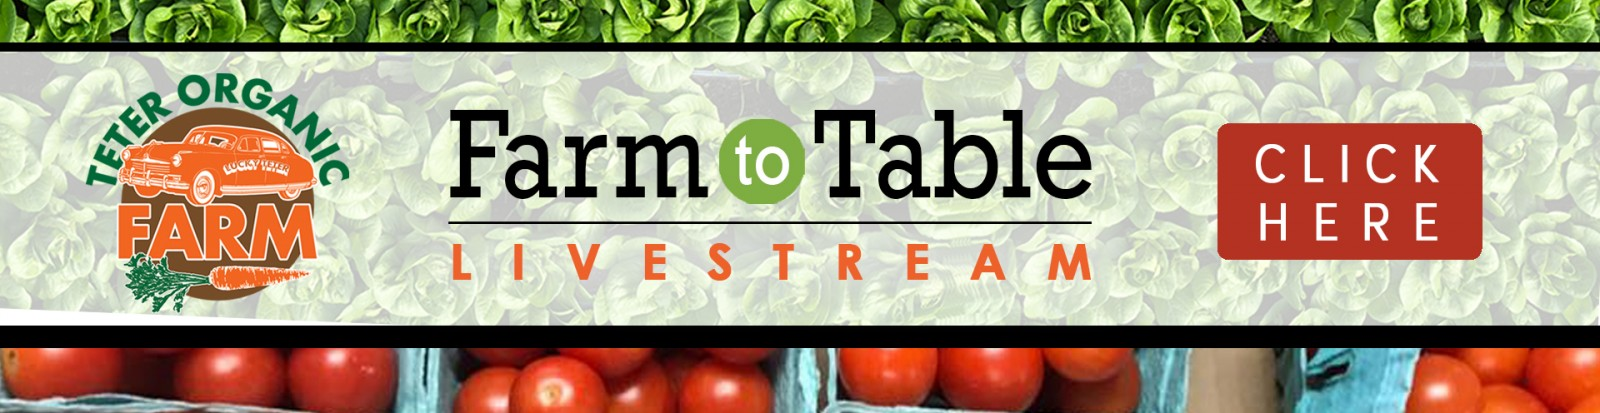 Farm-to-Table Dinner | 2020 livestream web banner